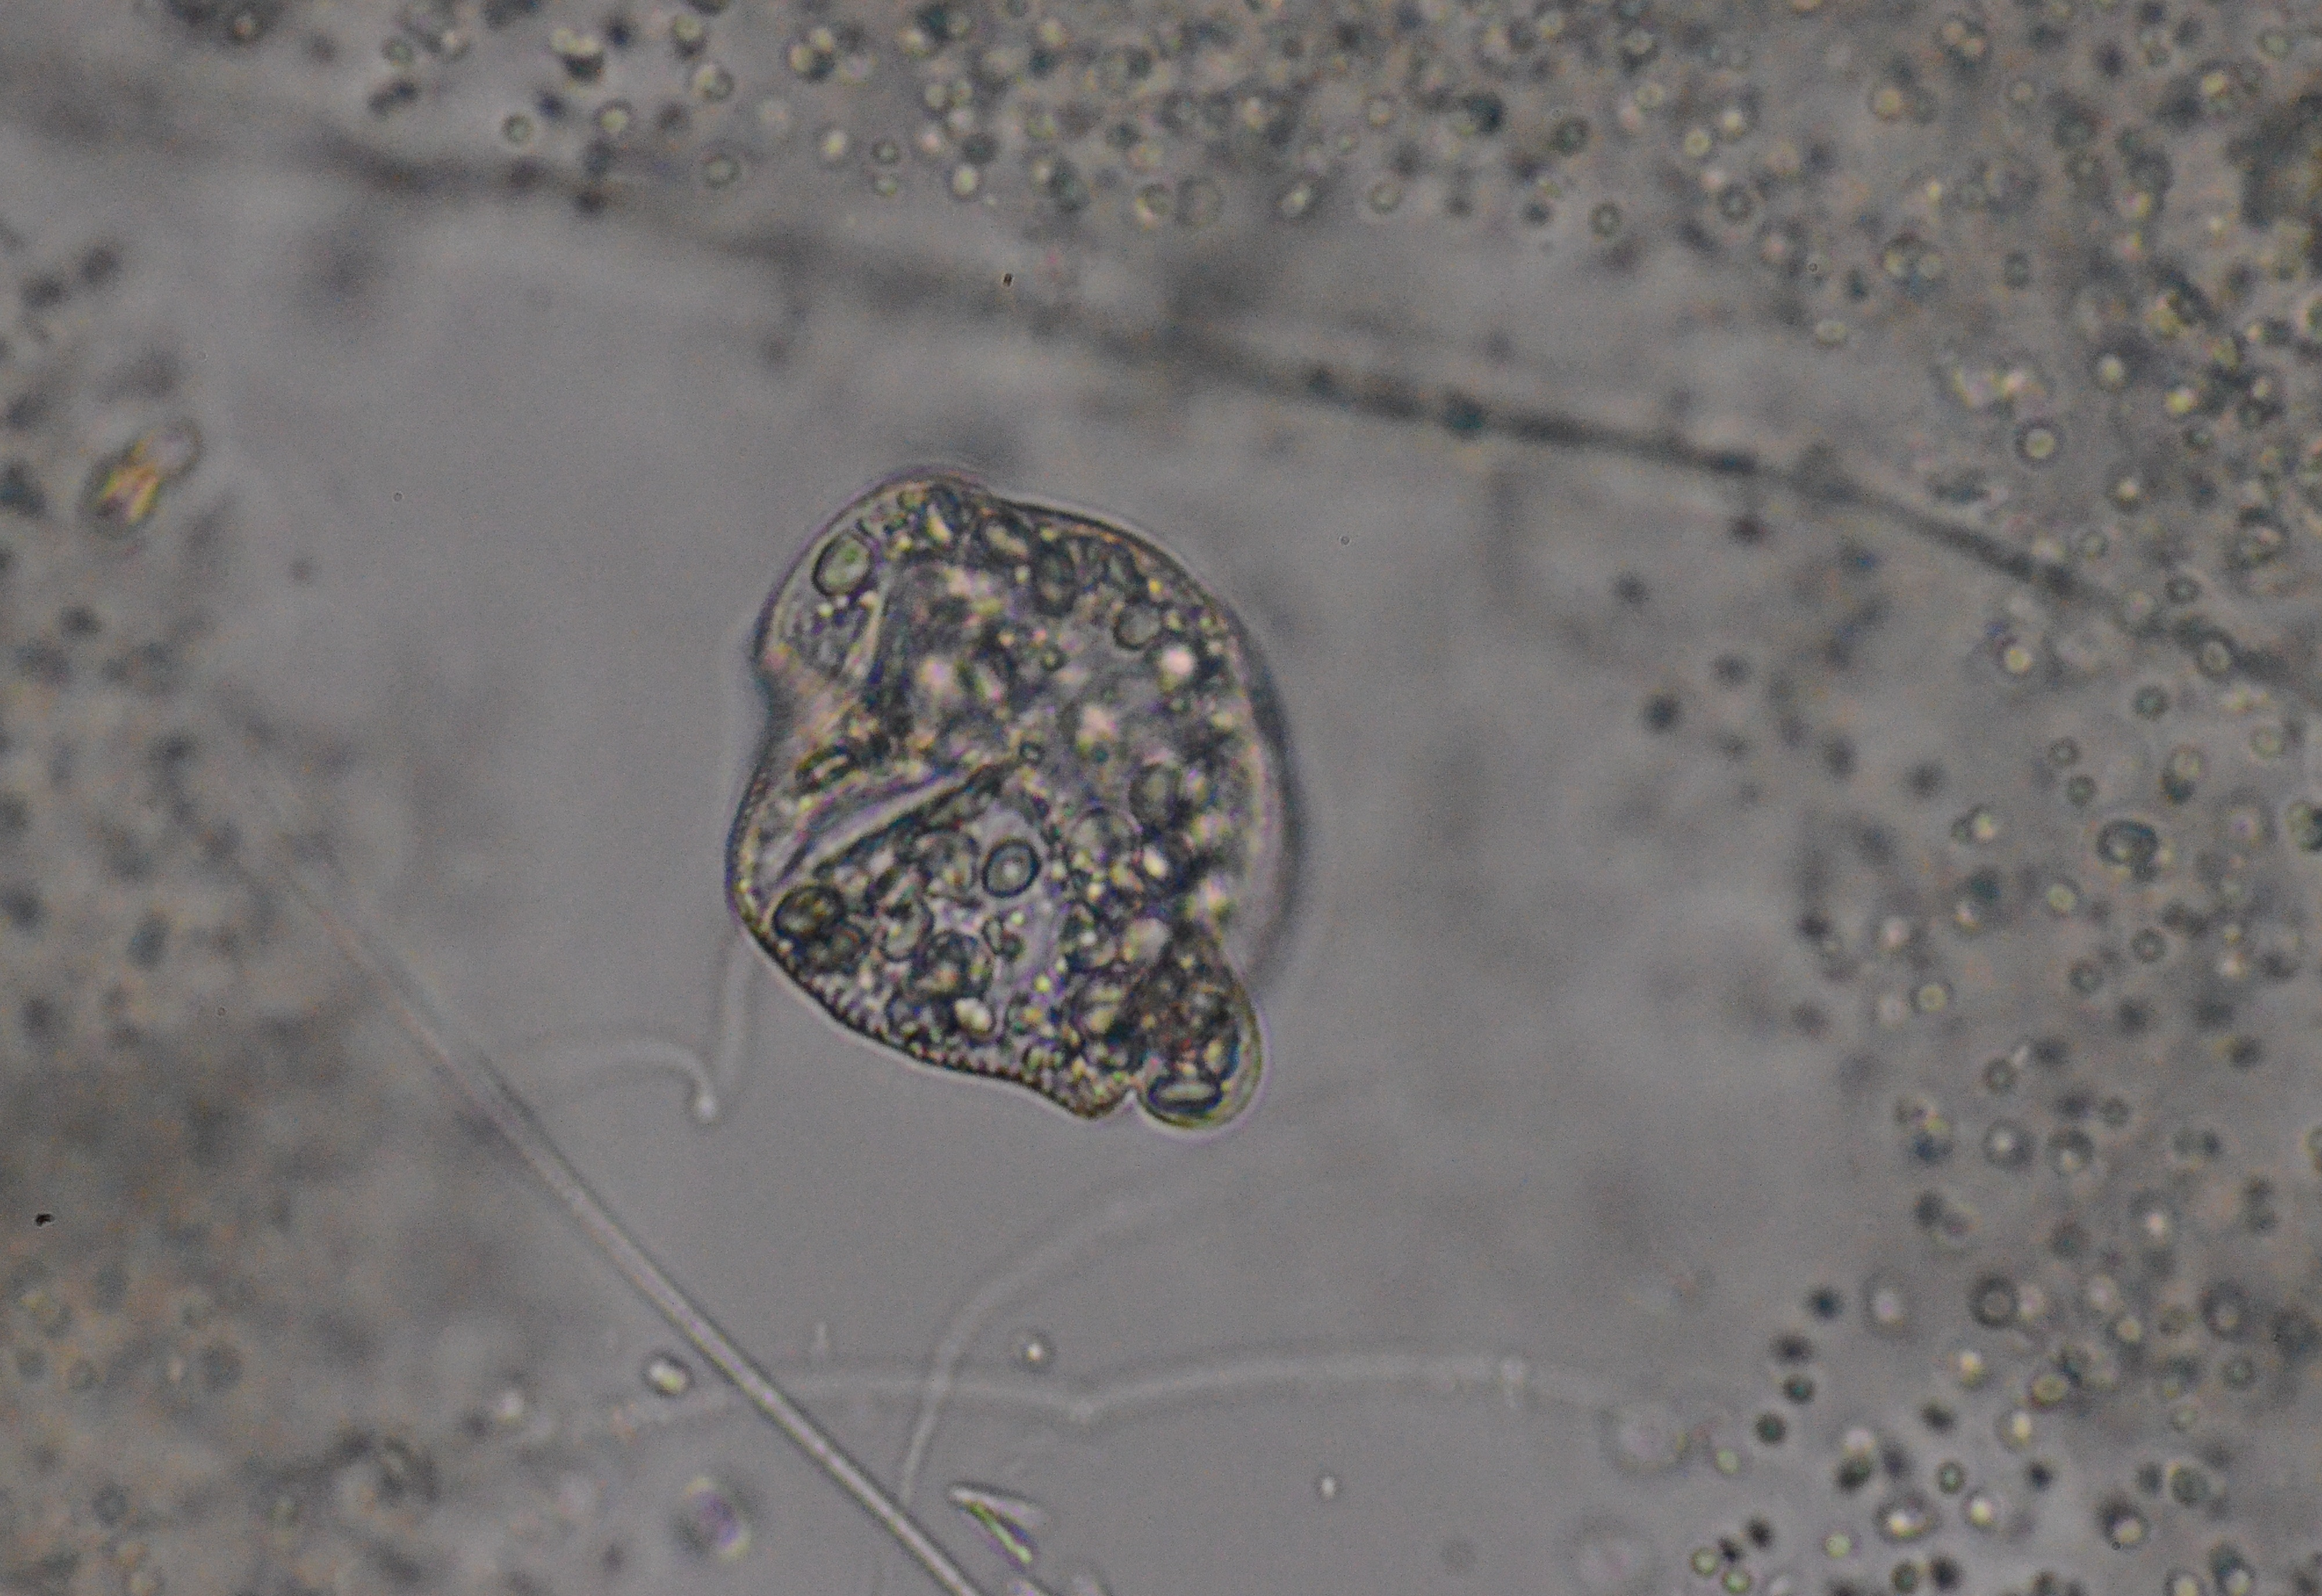 Other euglenids | Protists in Singapore